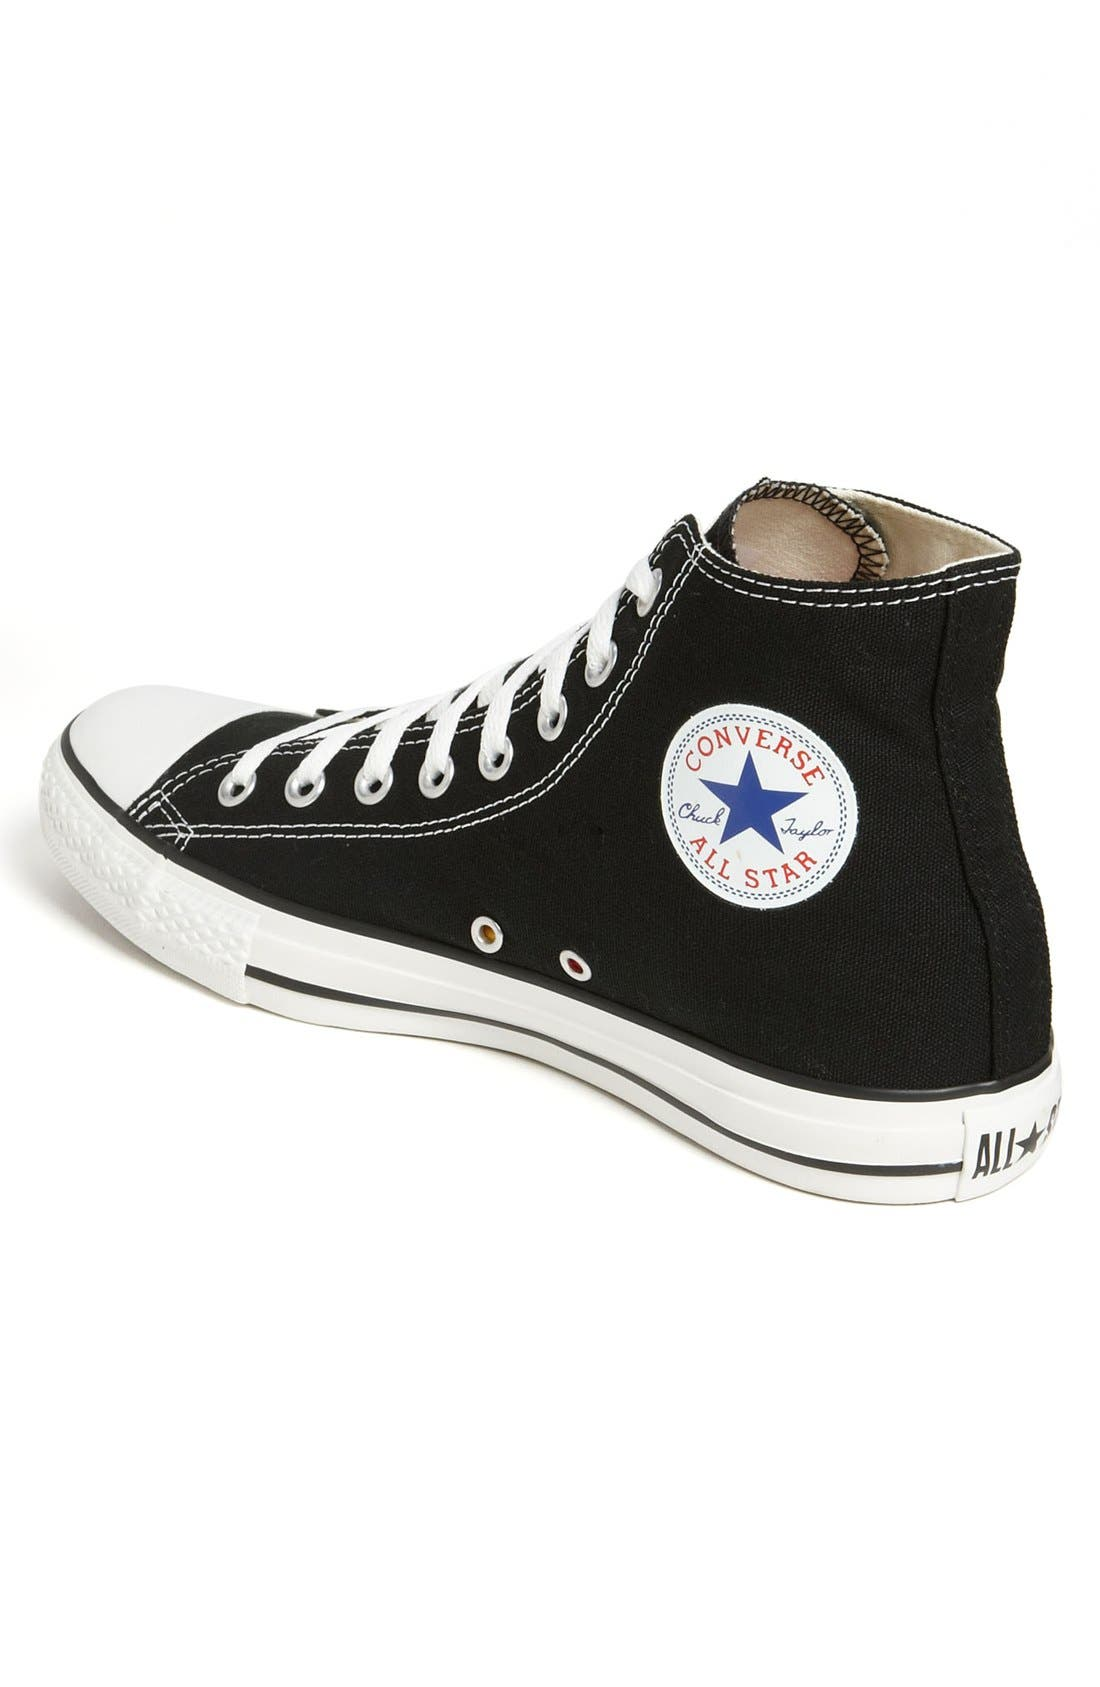 Chuck Taylor<sup>®</sup> High Top Sneaker,                             Alternate thumbnail 2, color,                             BLACK